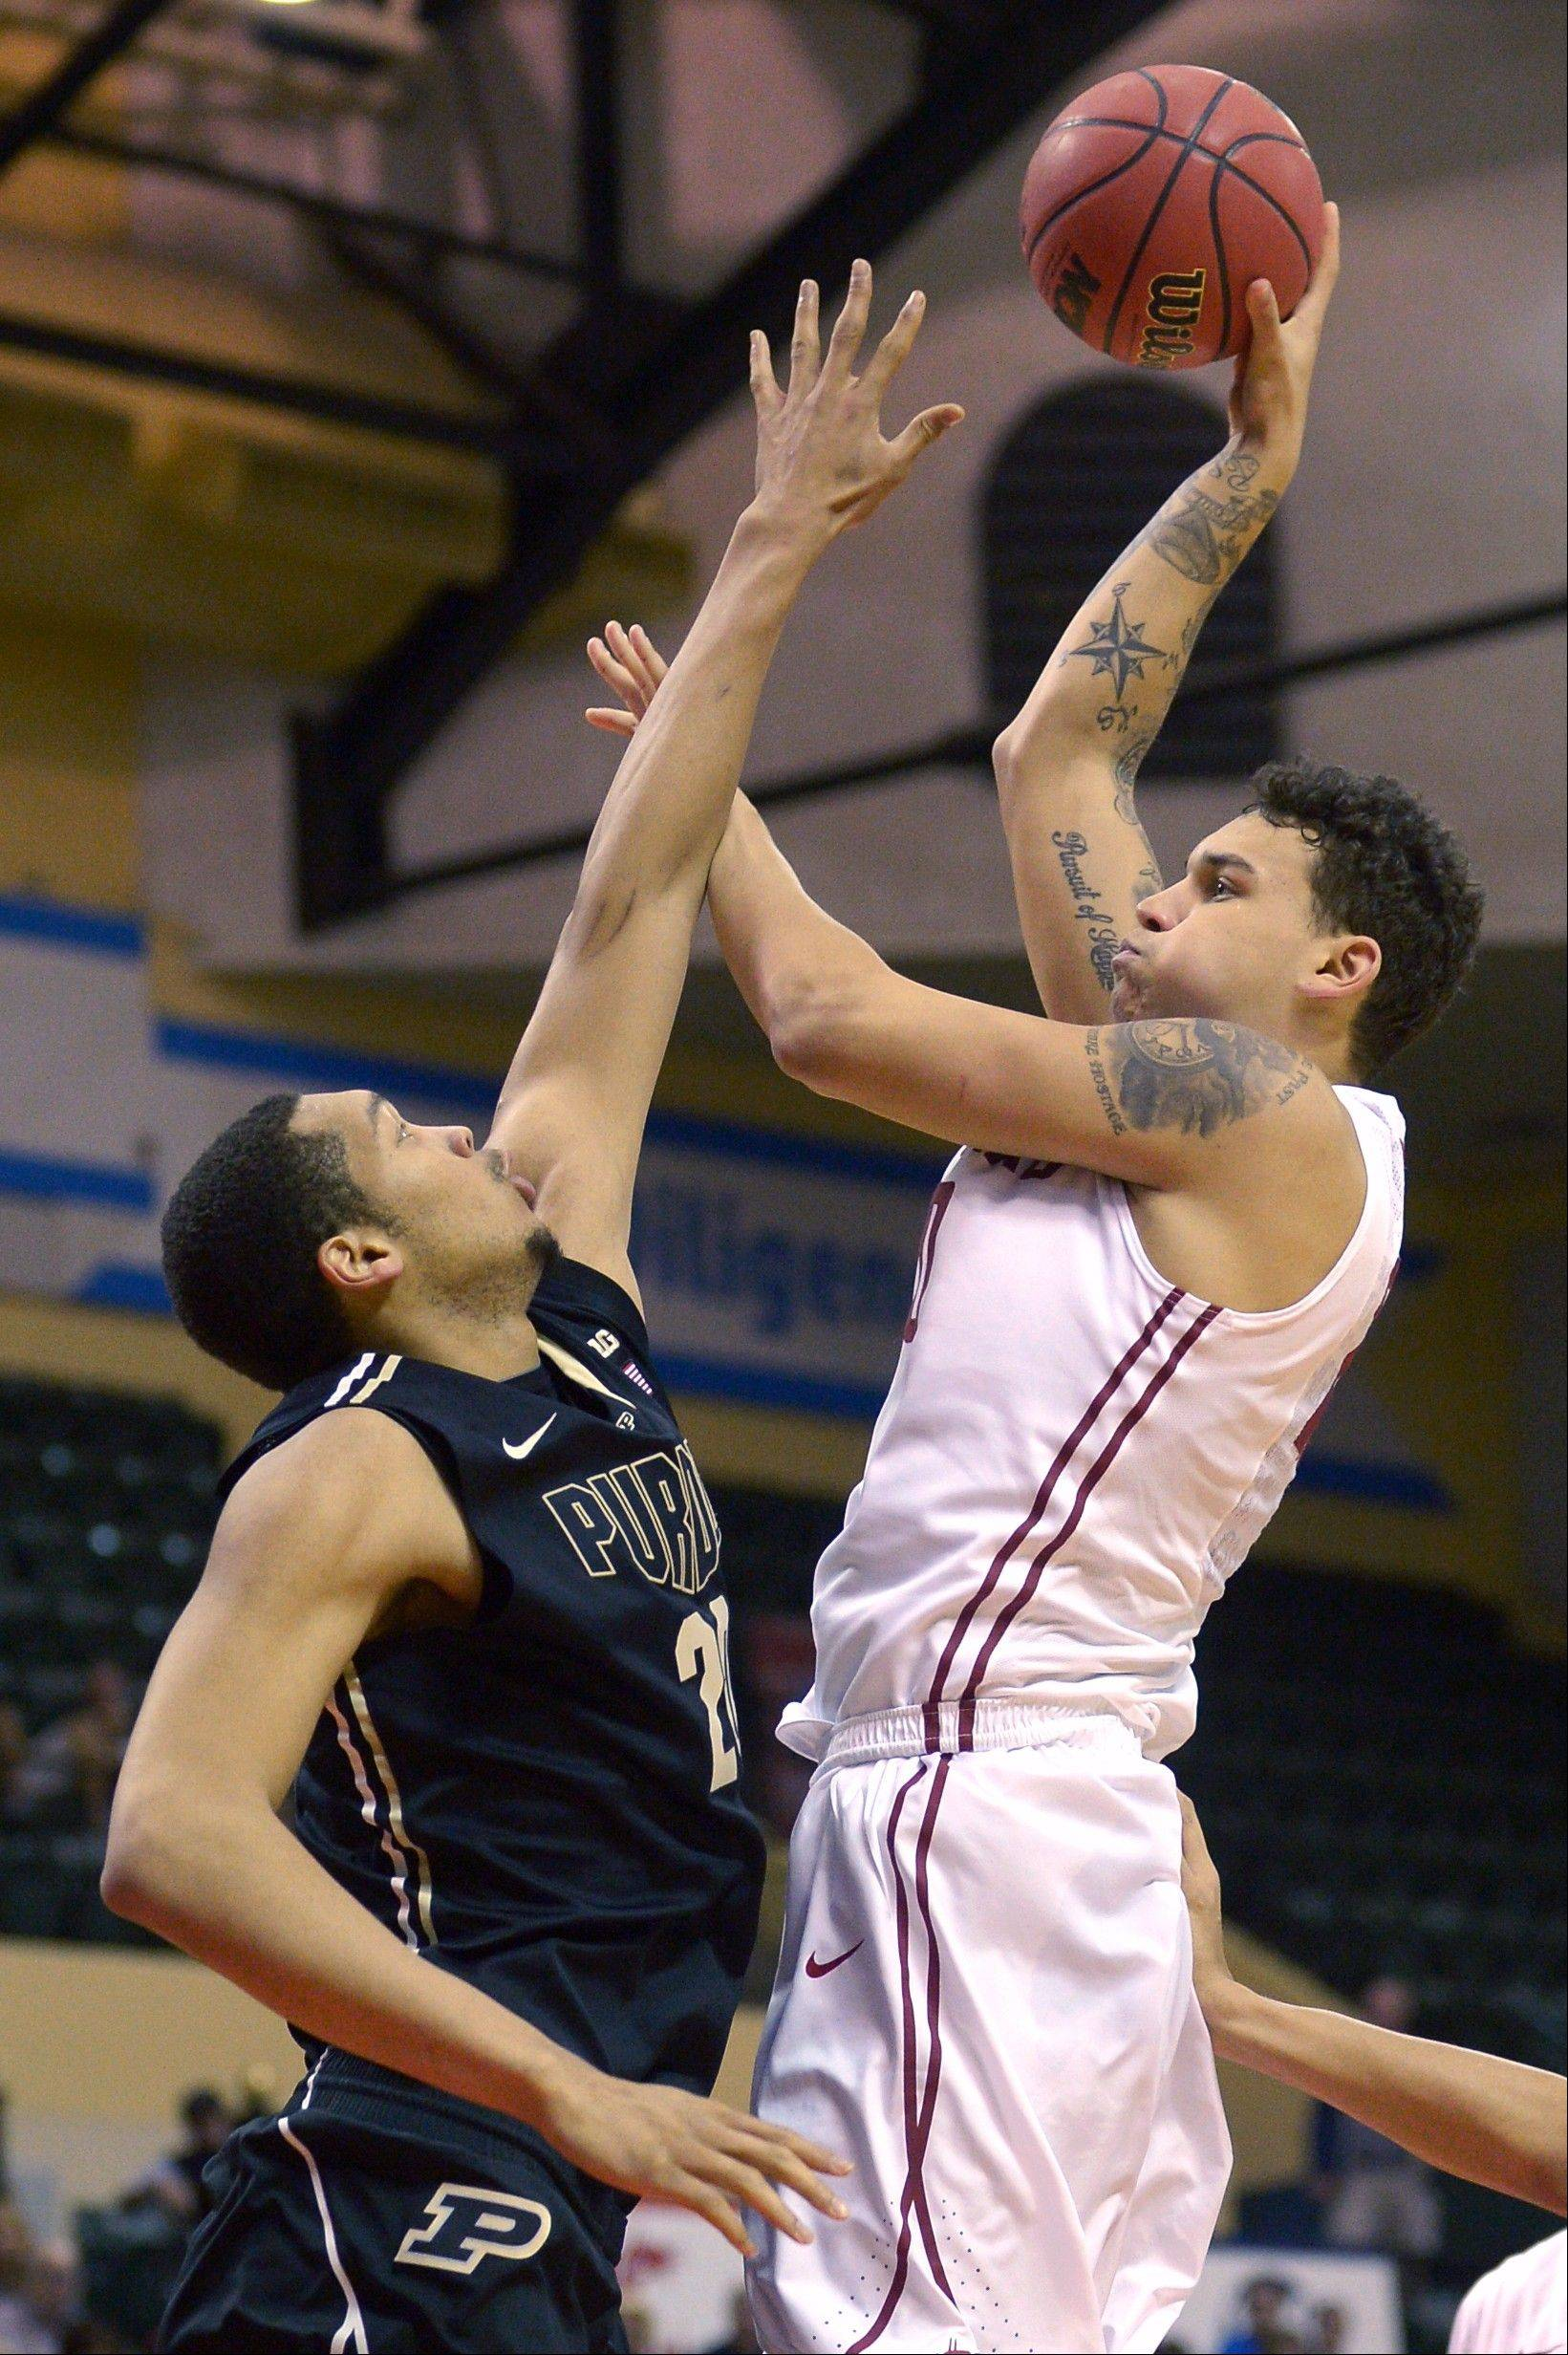 Washington State center Jordan Railey, right, puts up a shot in front of Purdue center A.J. Hammons on Friday at the Old Spice Classic tournament in Kissimmee, Fla.